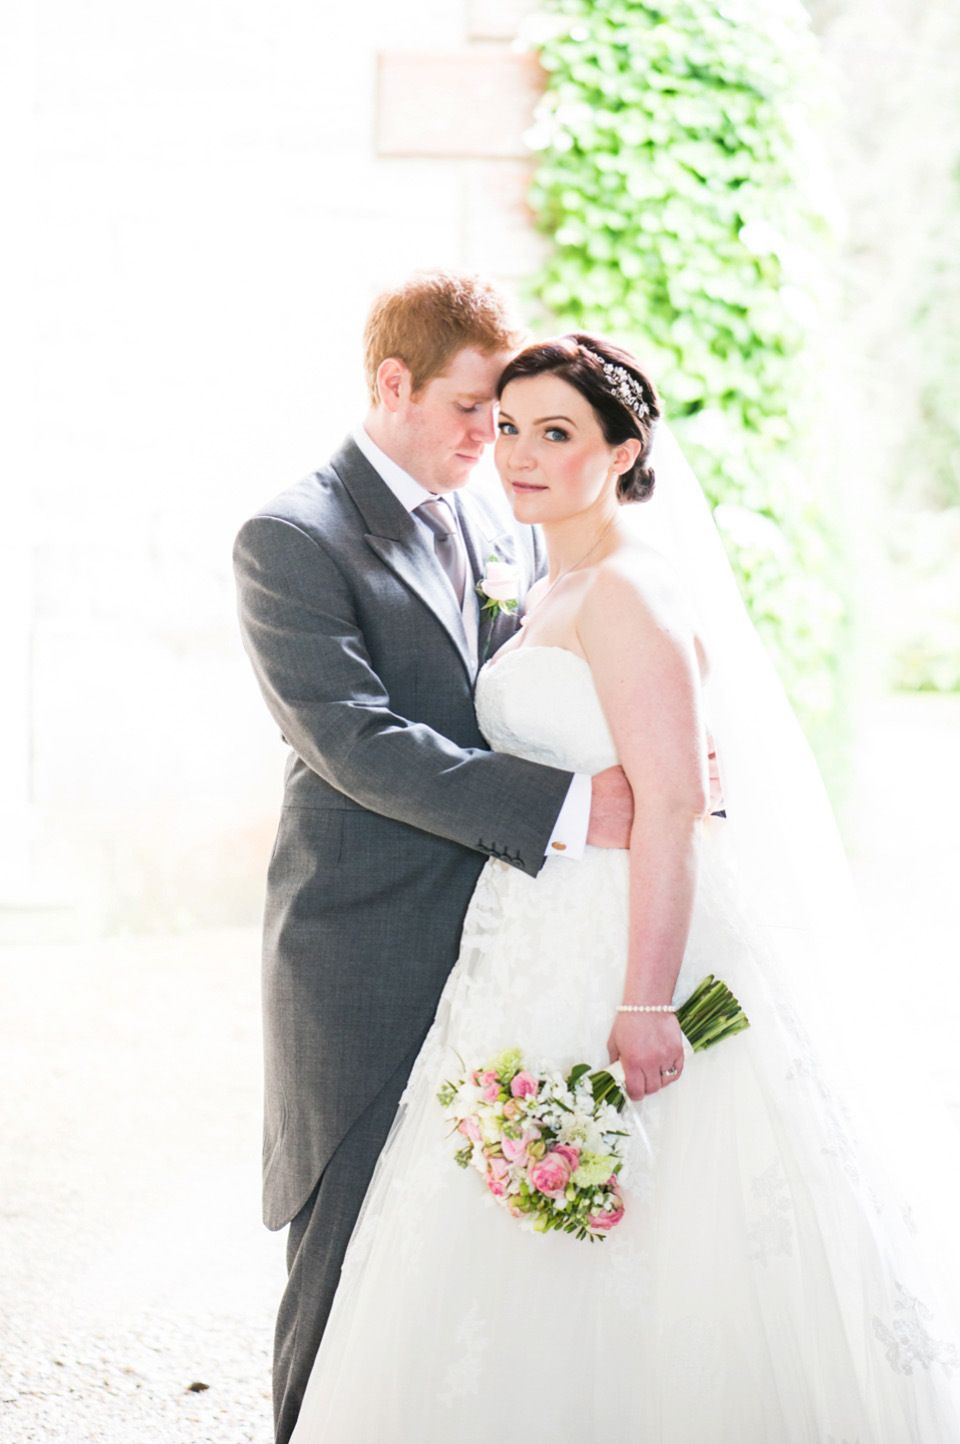 Pretty pink peonies and pronovias for a traditional english wedding